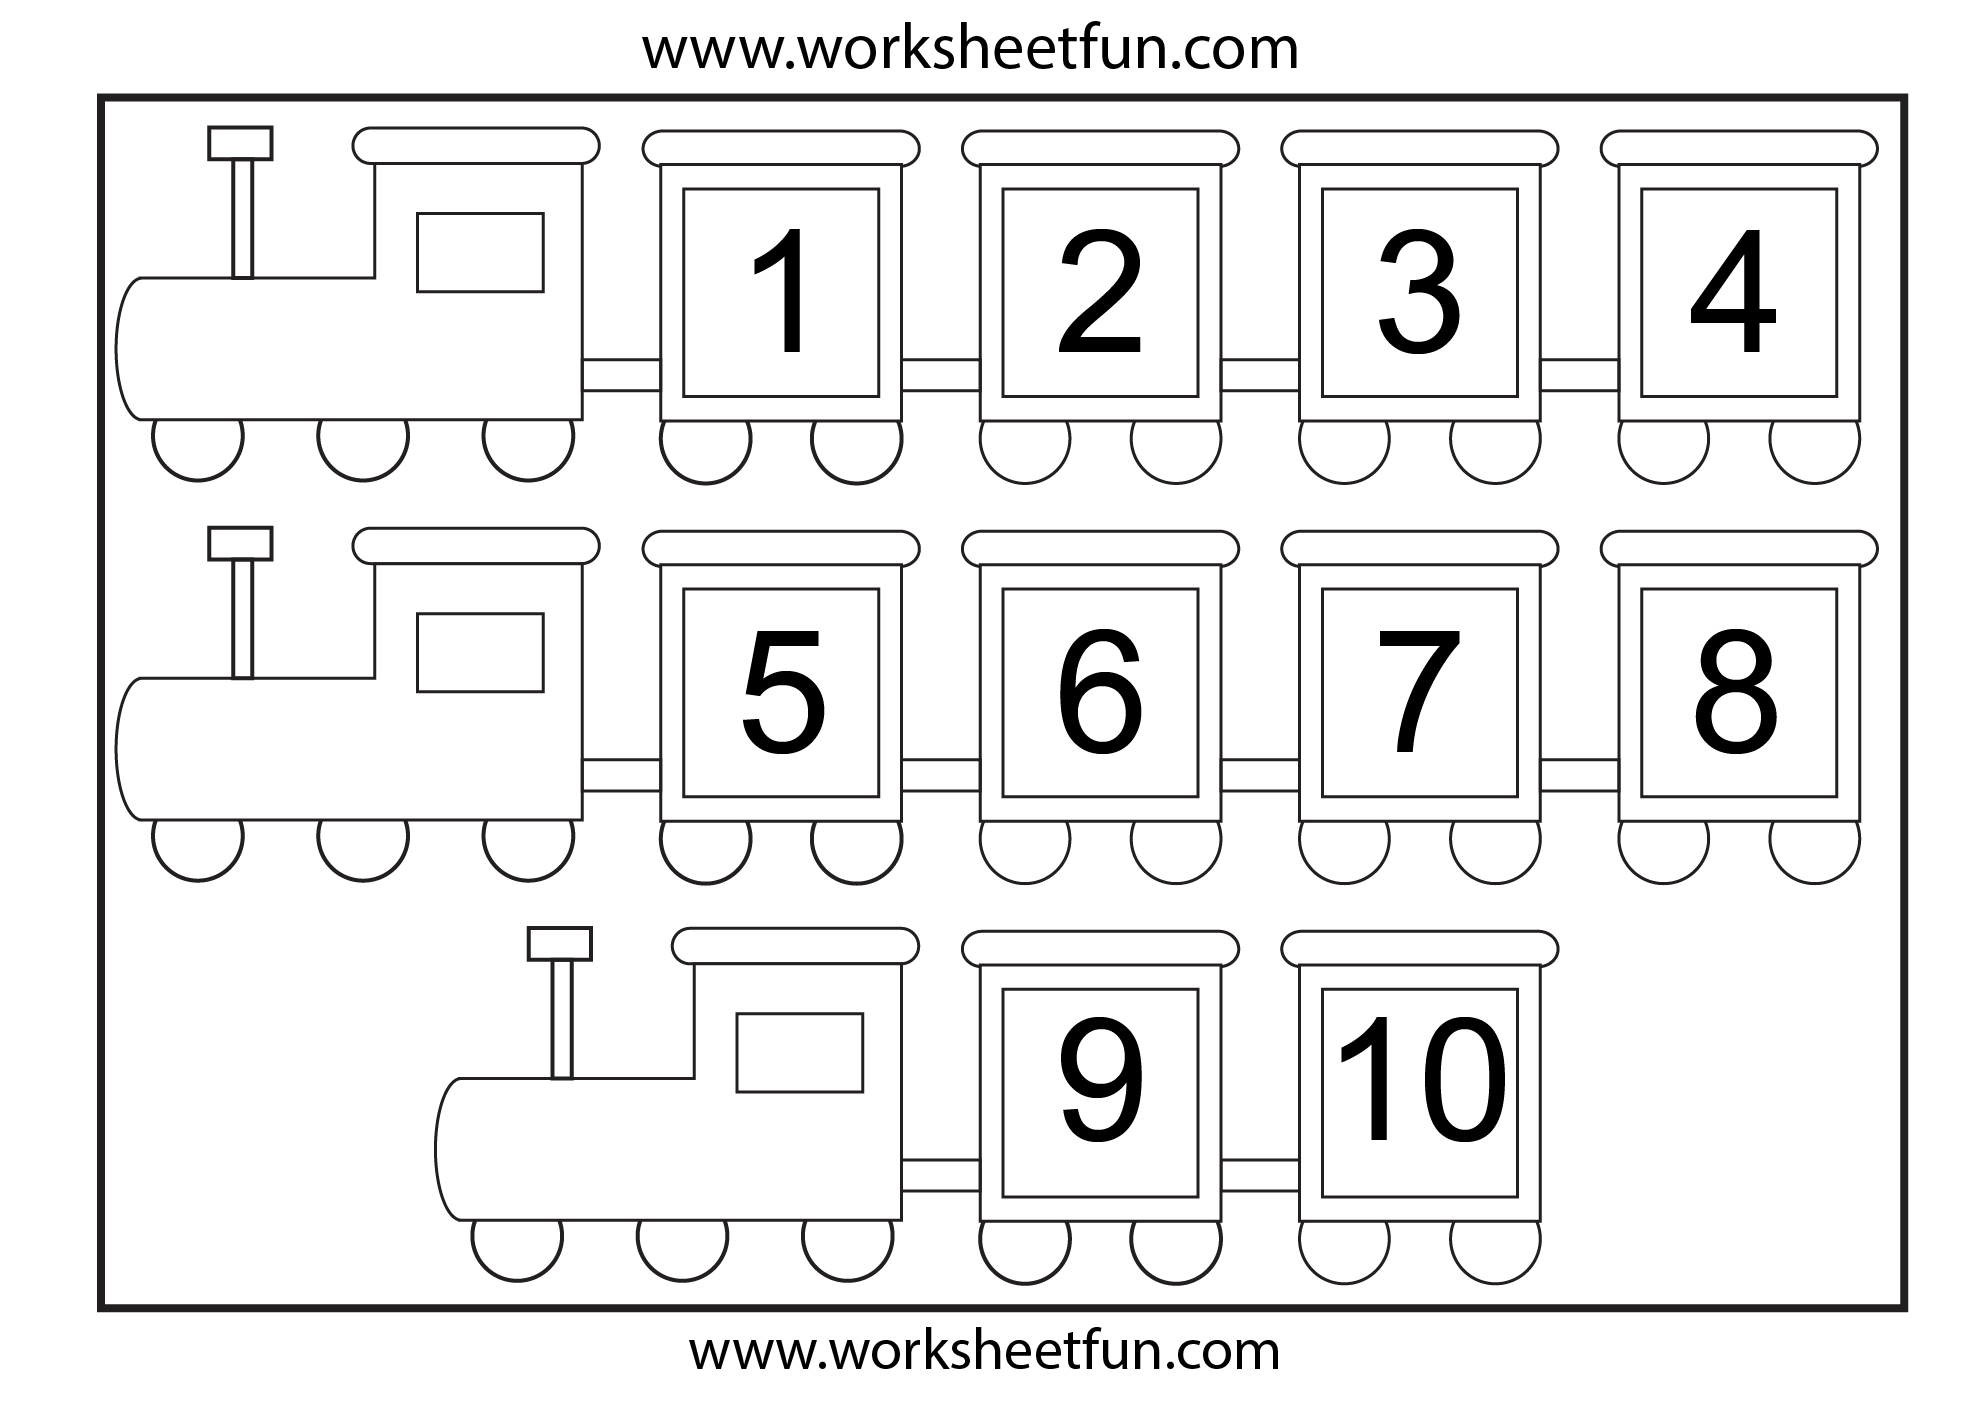 Ordering Numbers To 10 Worksheet